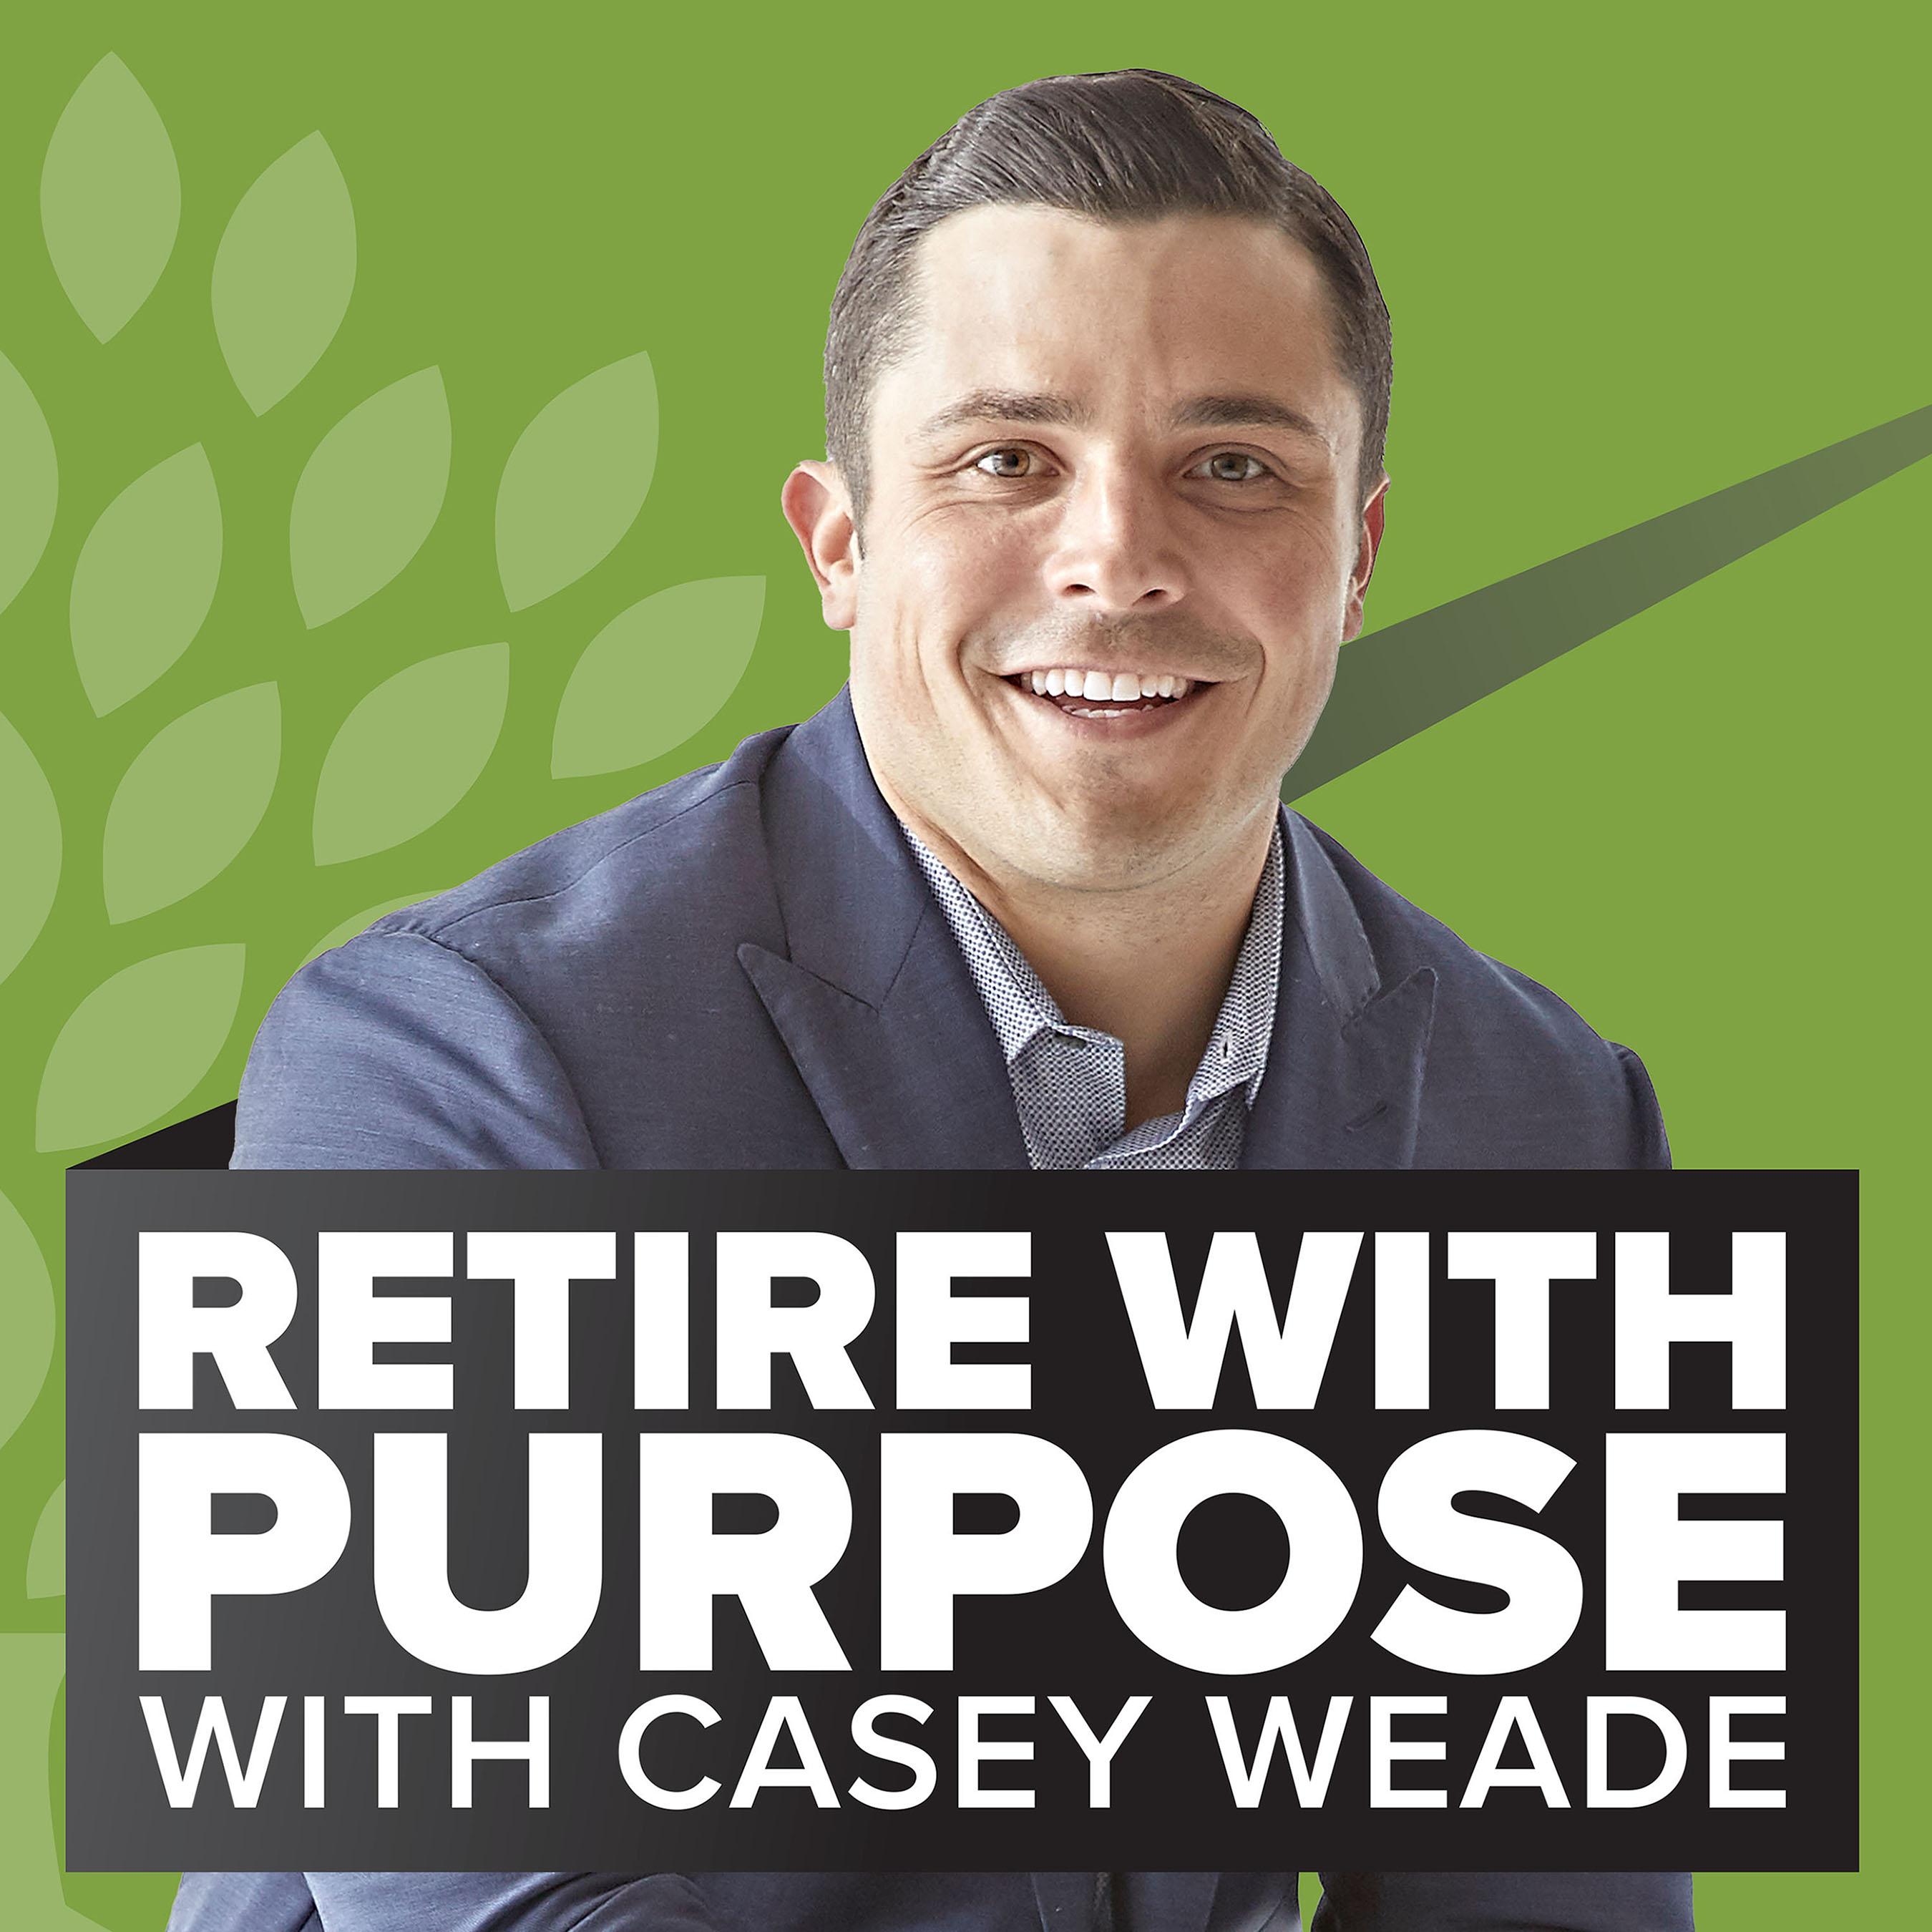 245: For Happiness In Retirement, Forget About Your Kids And The Fancy Car, Advisors Say